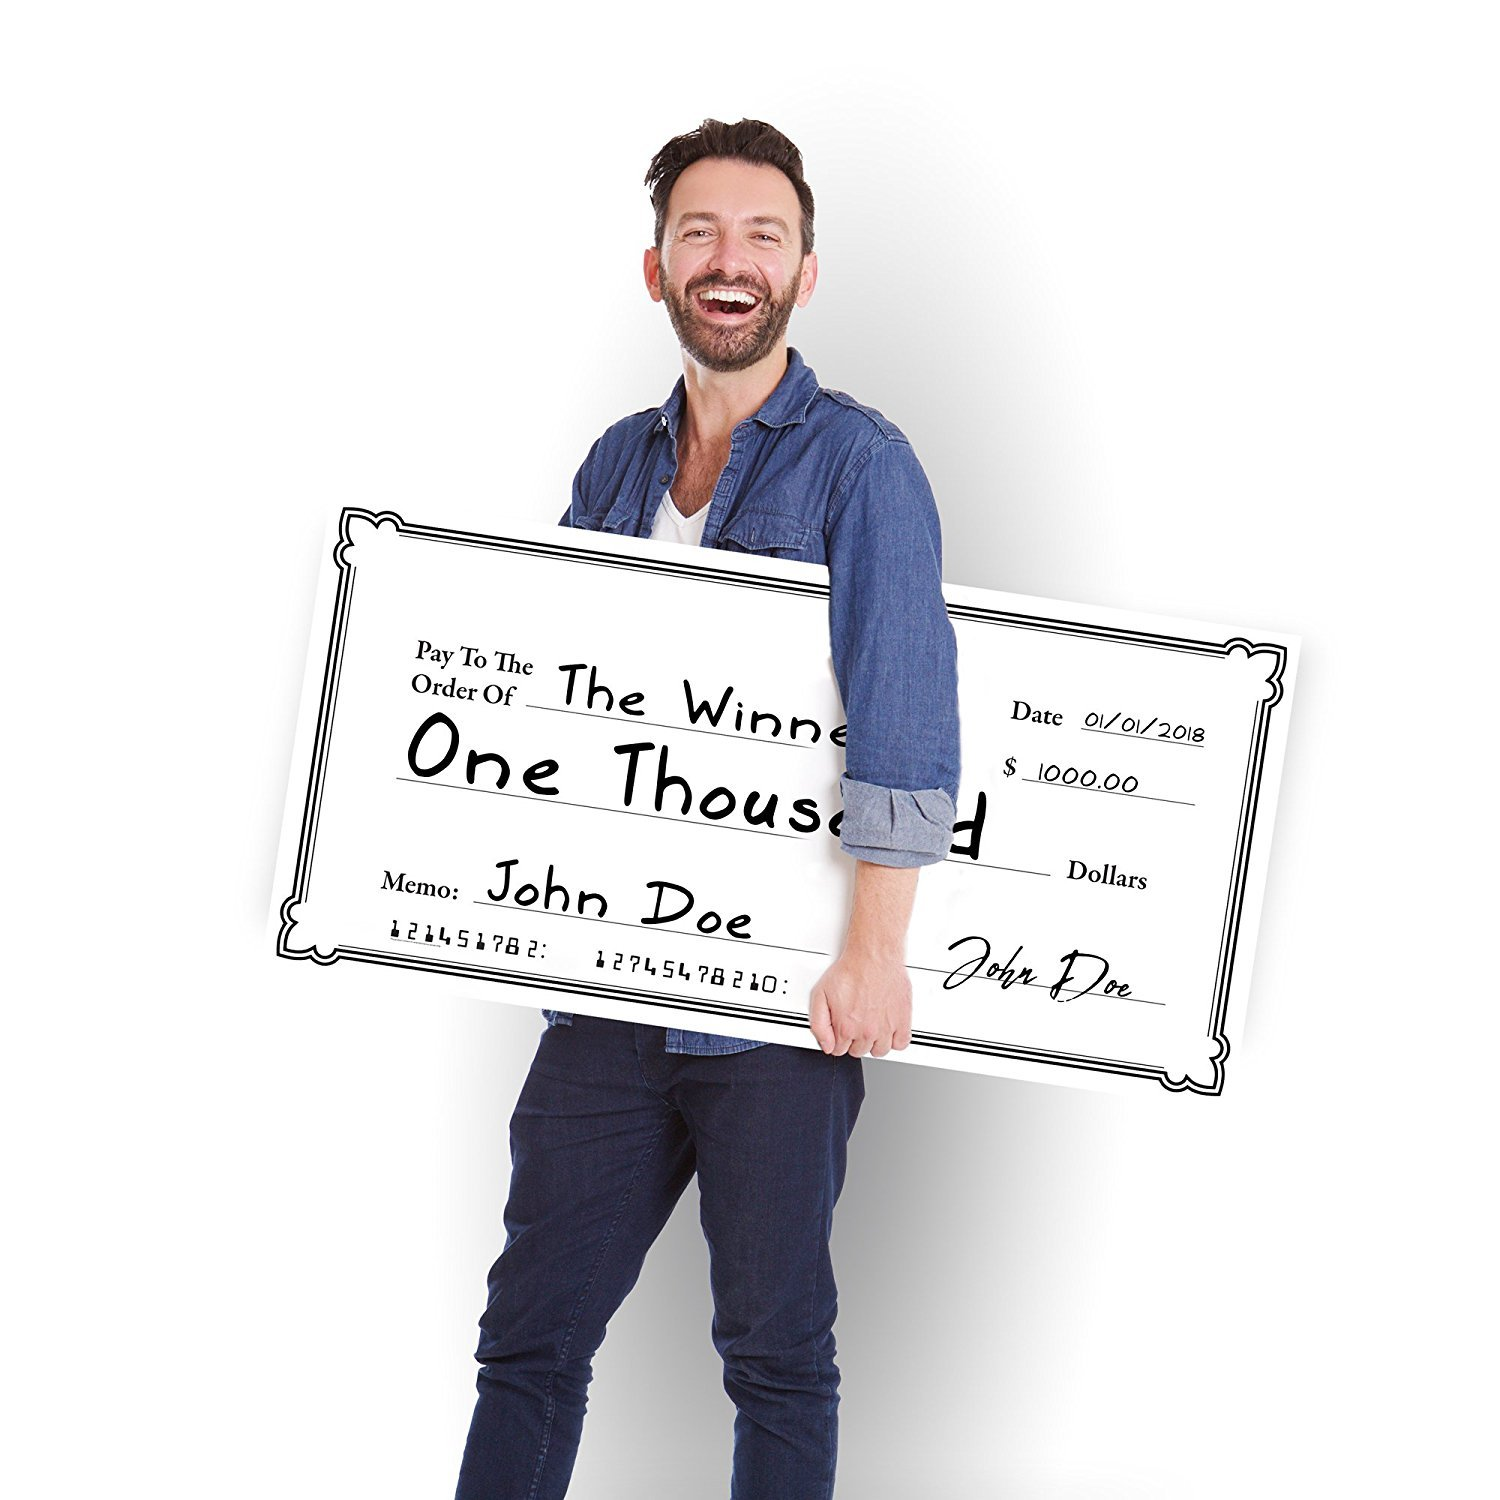 Giant Fake Check - 2' x 4' Coroplast Novelty Check for Fundraiser and Raffle Prizes - Big Blank Check - 24'' x 48'' Corrugated Plastic Oversized Presentation Check - White Check for Sweepstakes Winner